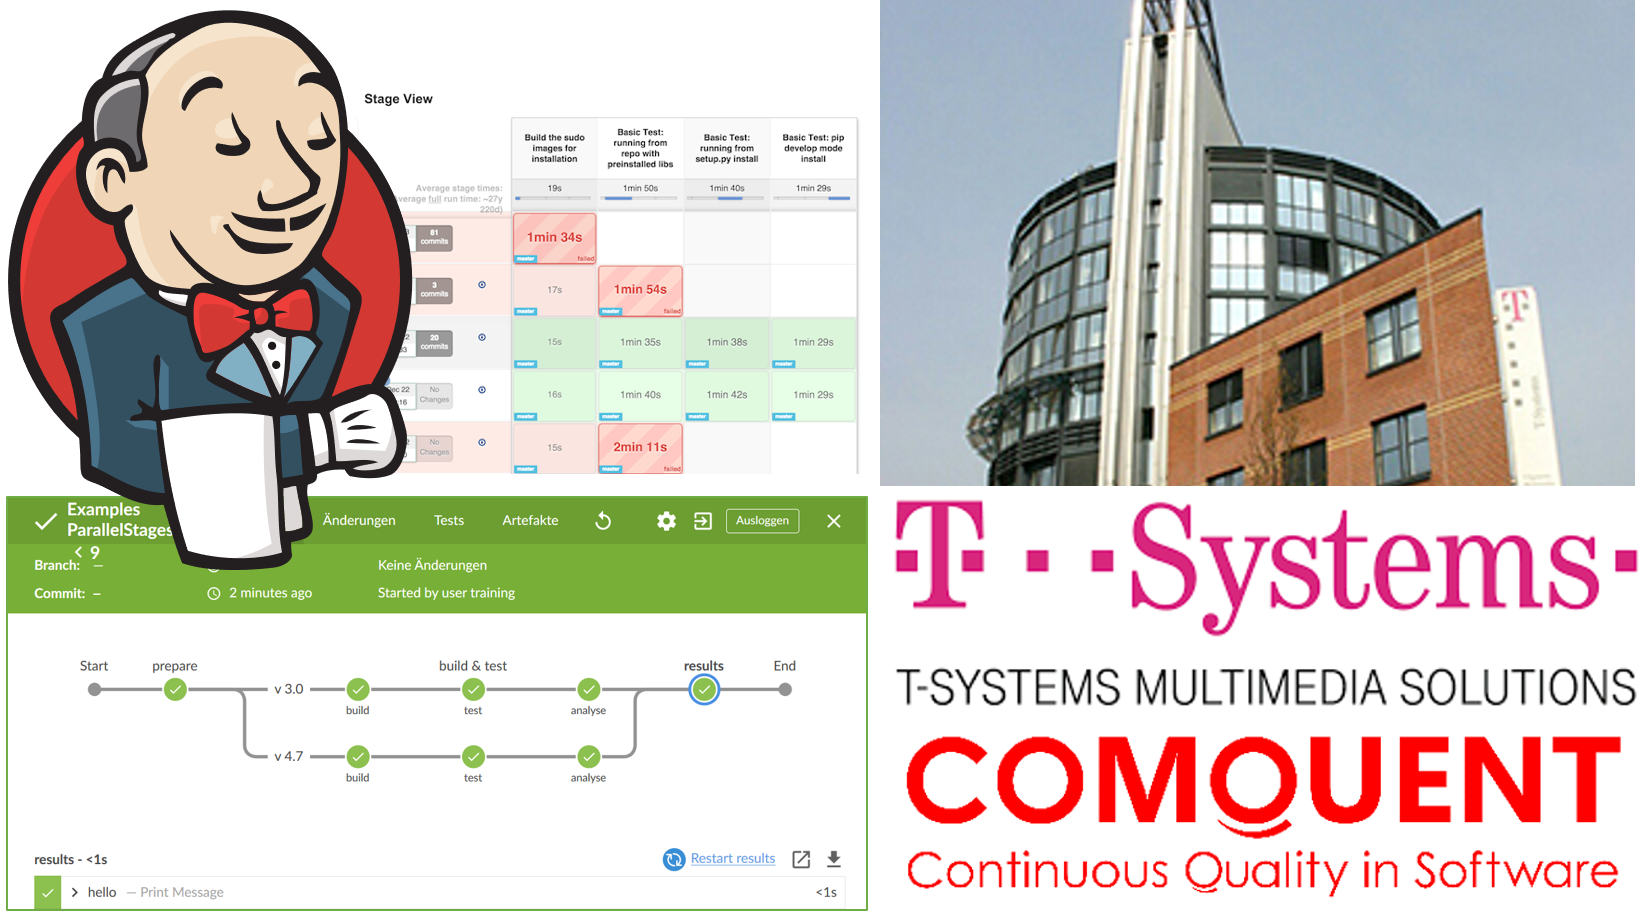 , Unser Jenkins-Pipeline-Training bei der T-Systems MMS in Dresden, Comquent GmbH, Continuous Quality in Software